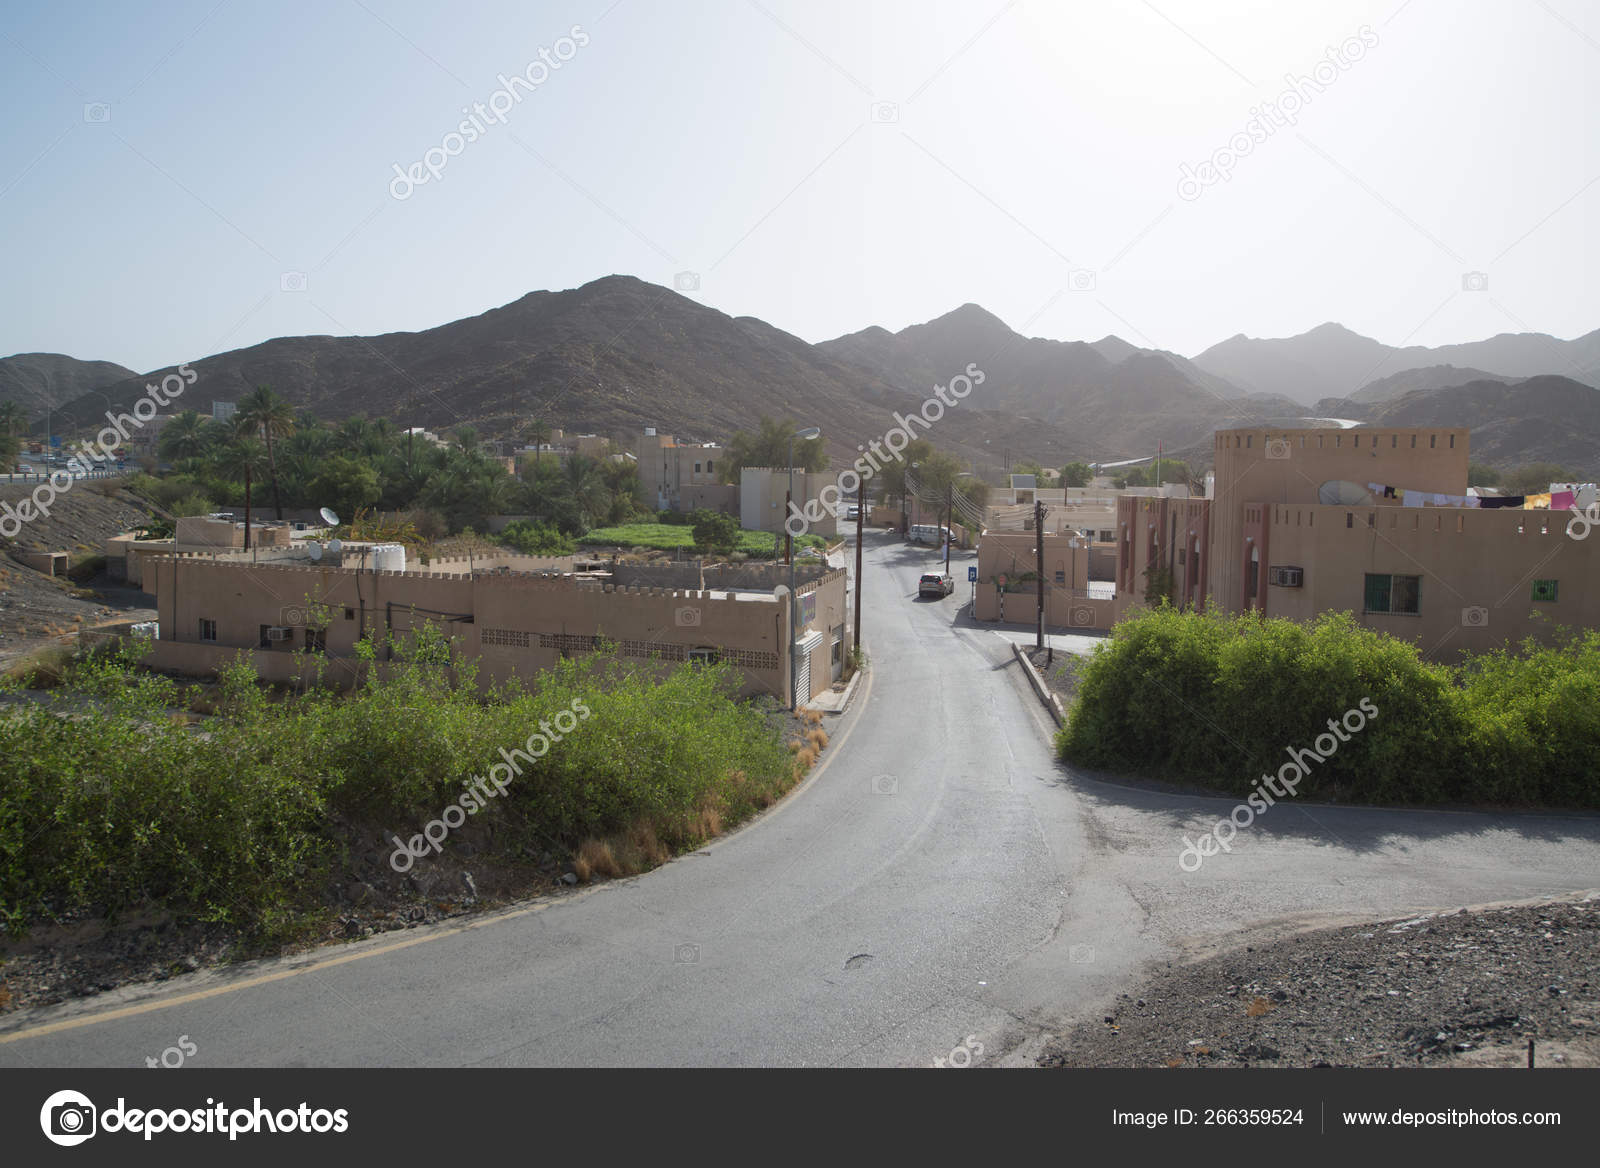 Buildings Situated Desert Country Oman Capital City Muscat — Stock